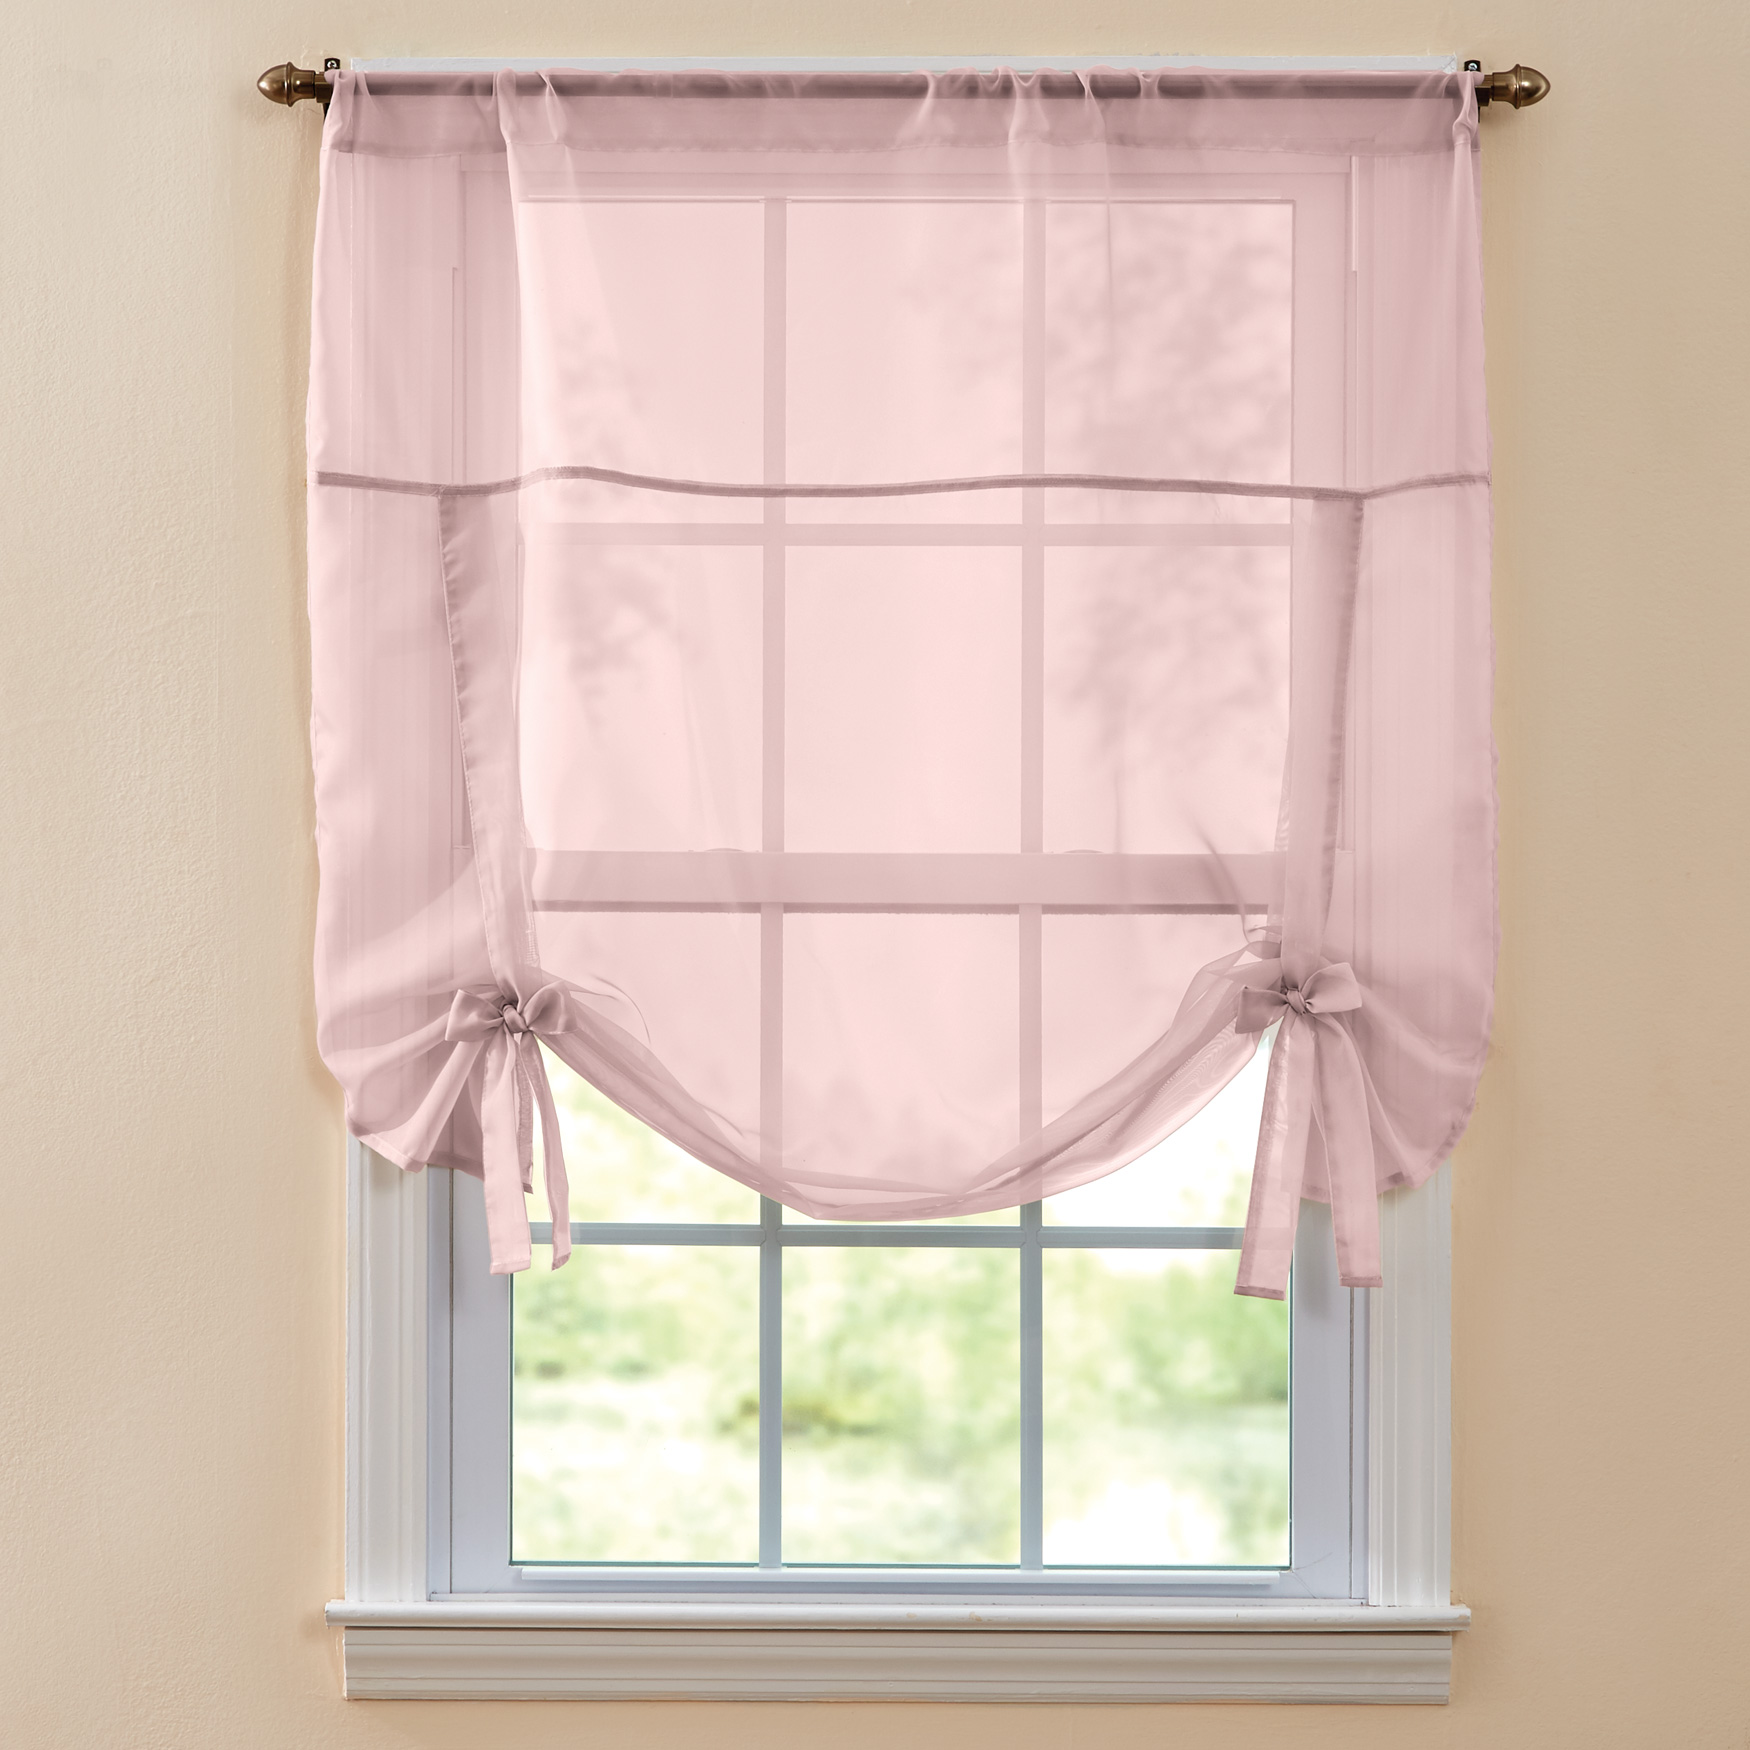 BH Studio Sheer Voile Tie-Up Shade,